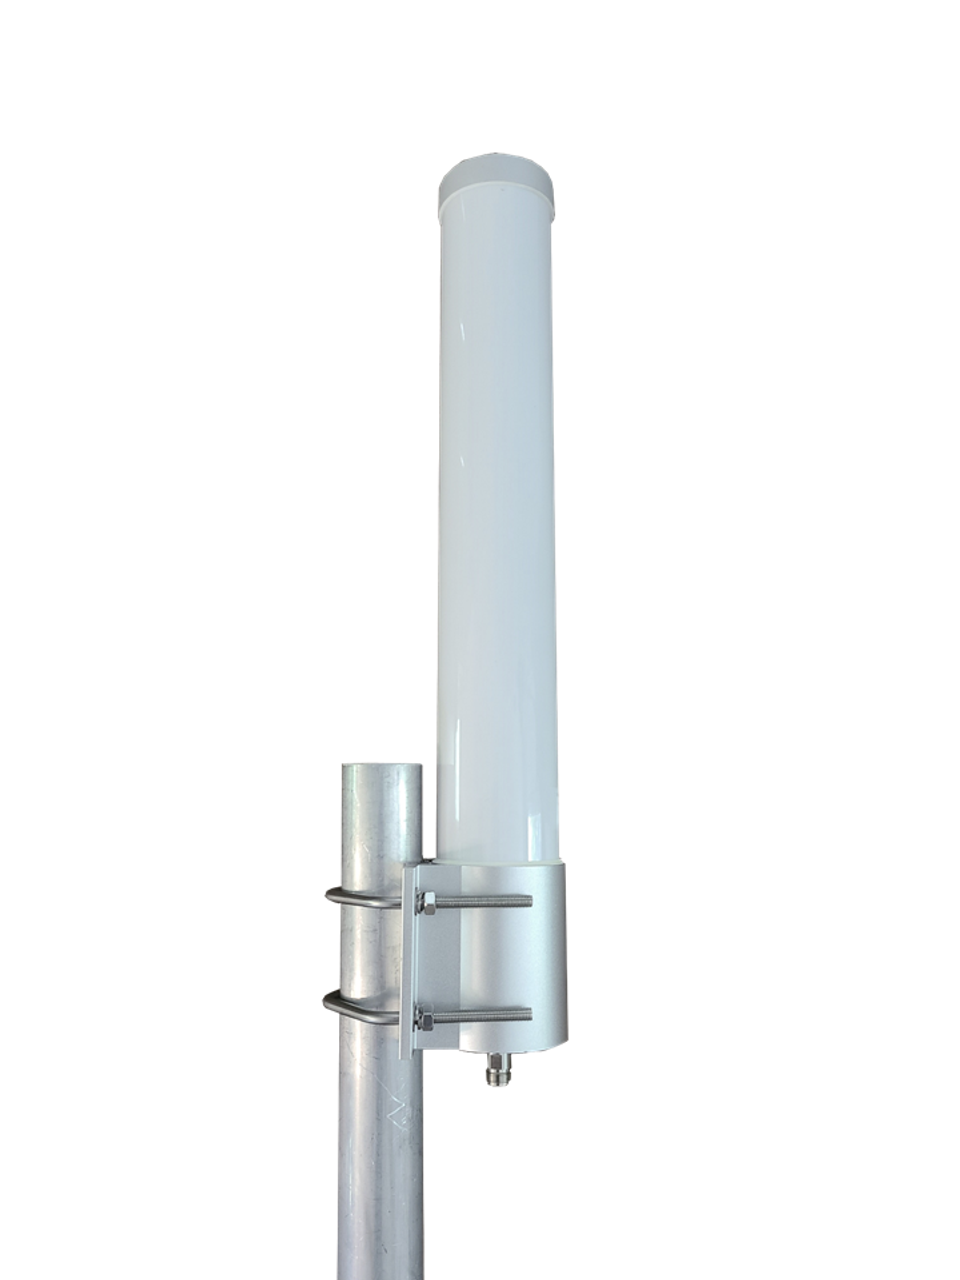 M25T Omni Directional T-Mobile 4G 5G NR (Band 71 Optimized) / Dual Band WIFI Antenna - Pole Mount (Bracket Mount Hardware Included)